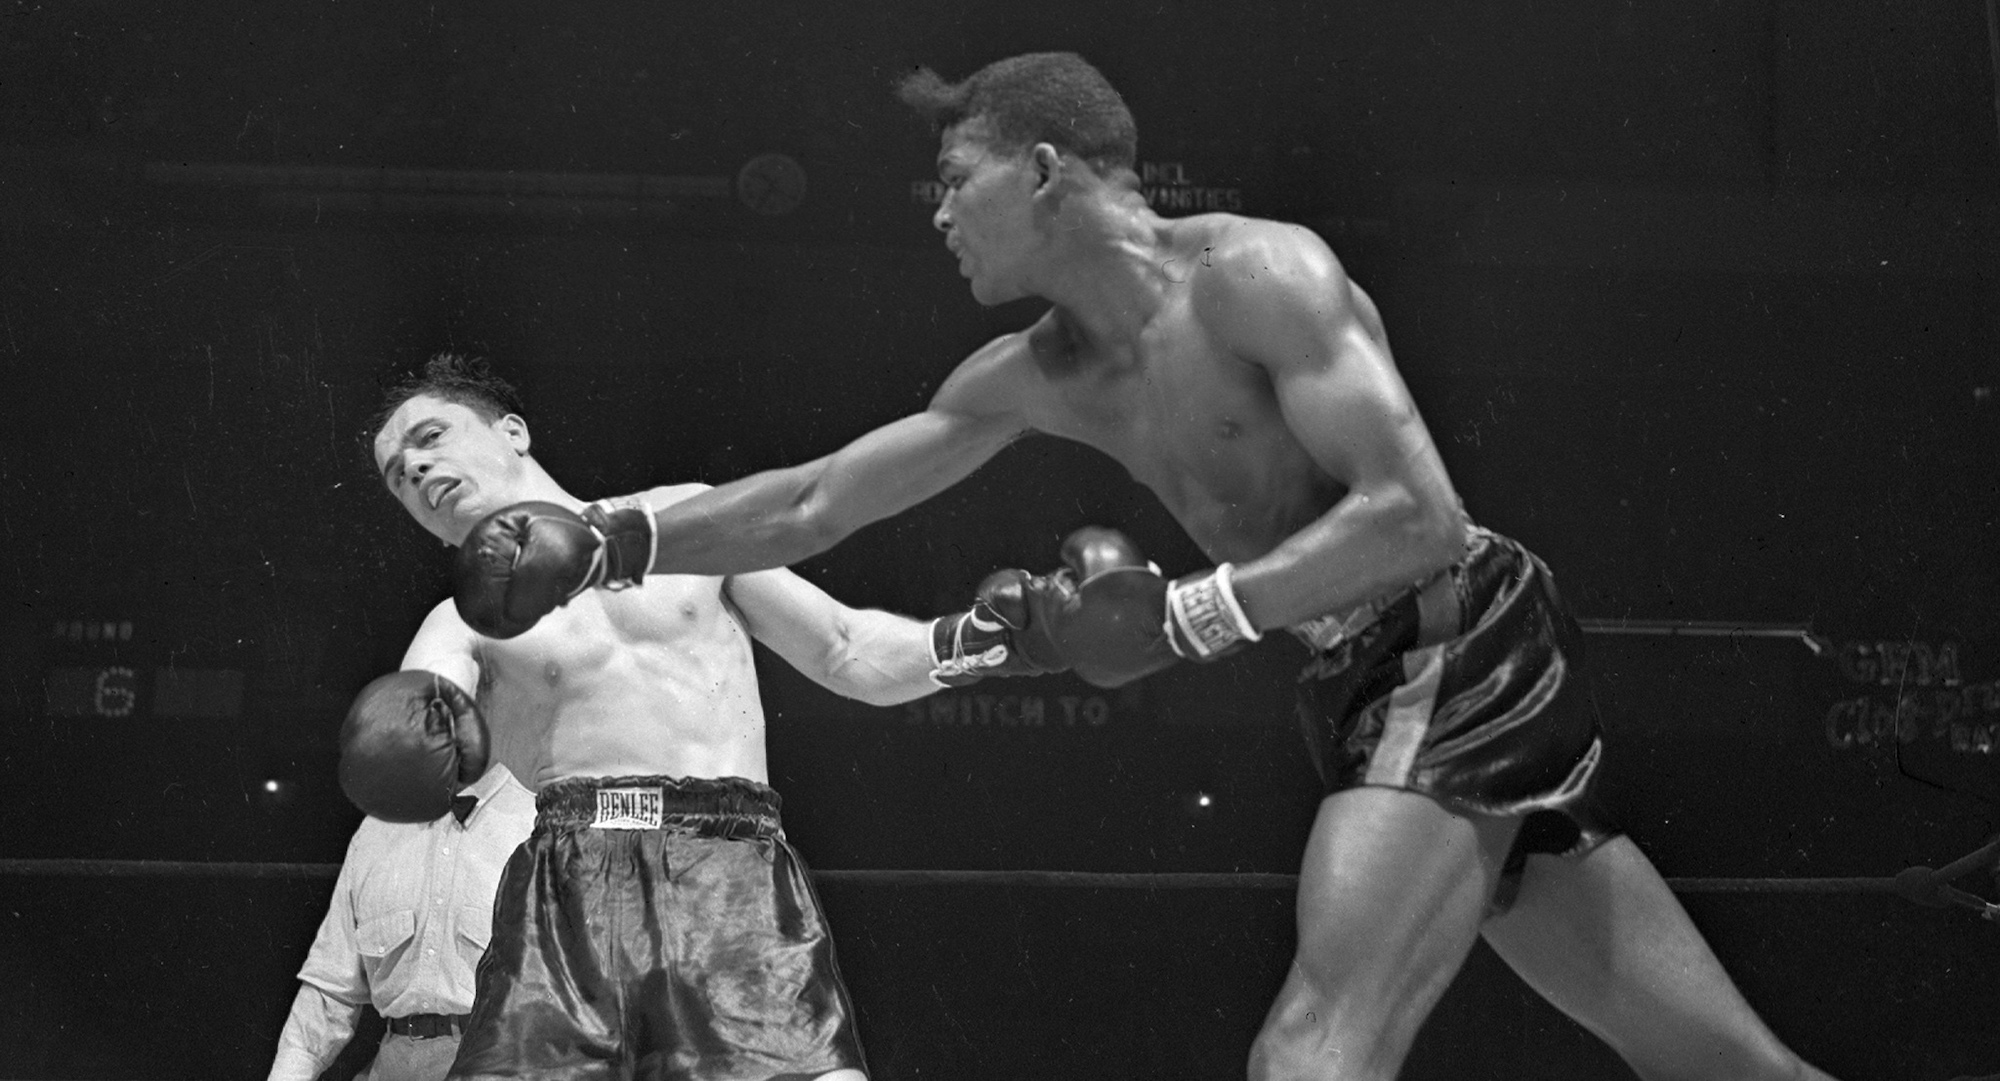 Boxing Legend Sugar Ray Robinson Blew His Millions and Ended Up Bankrupt